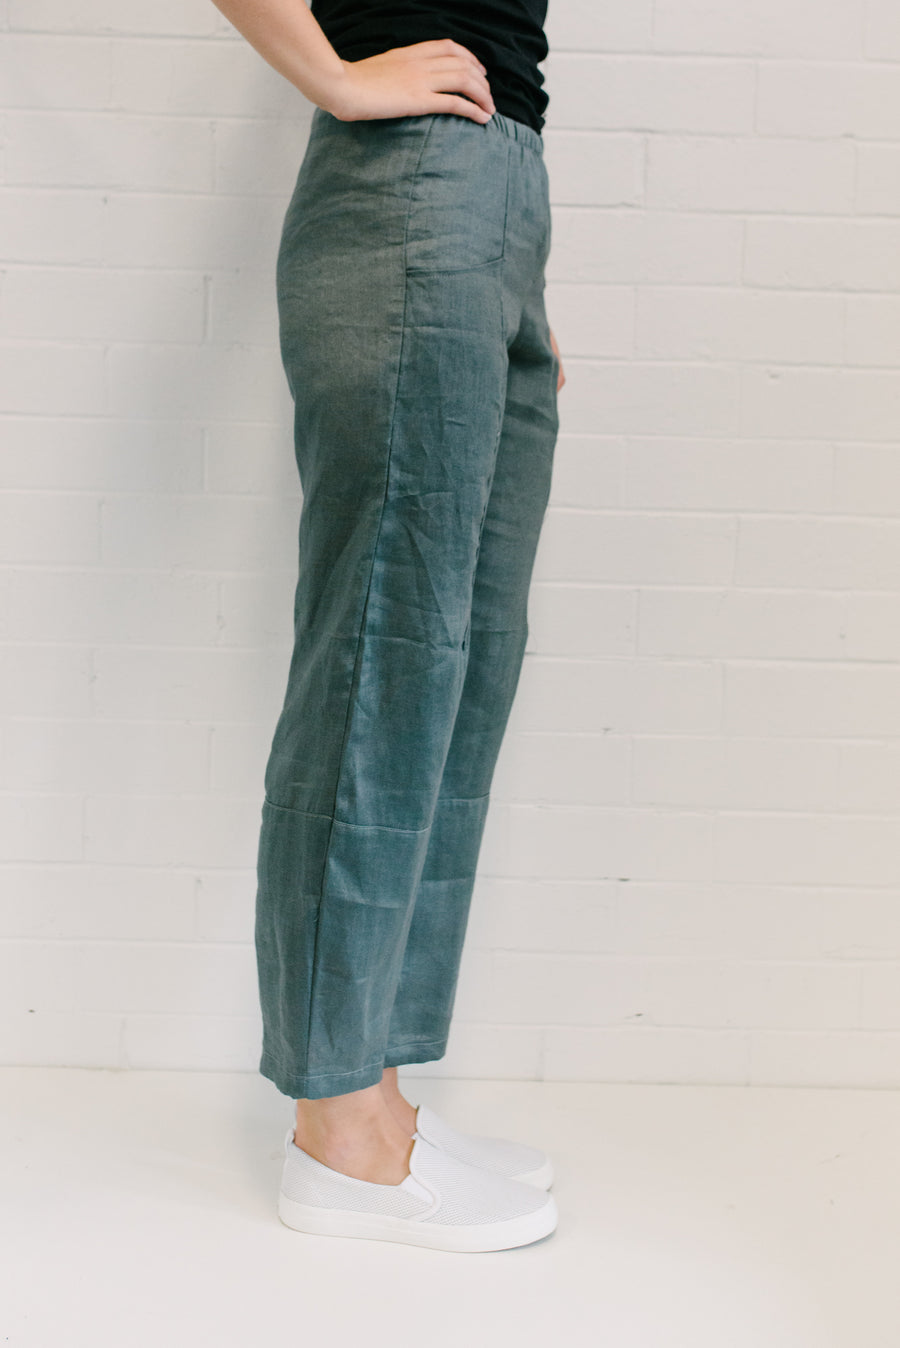 Relaxed Pant Women | Lyn Rose Boutique